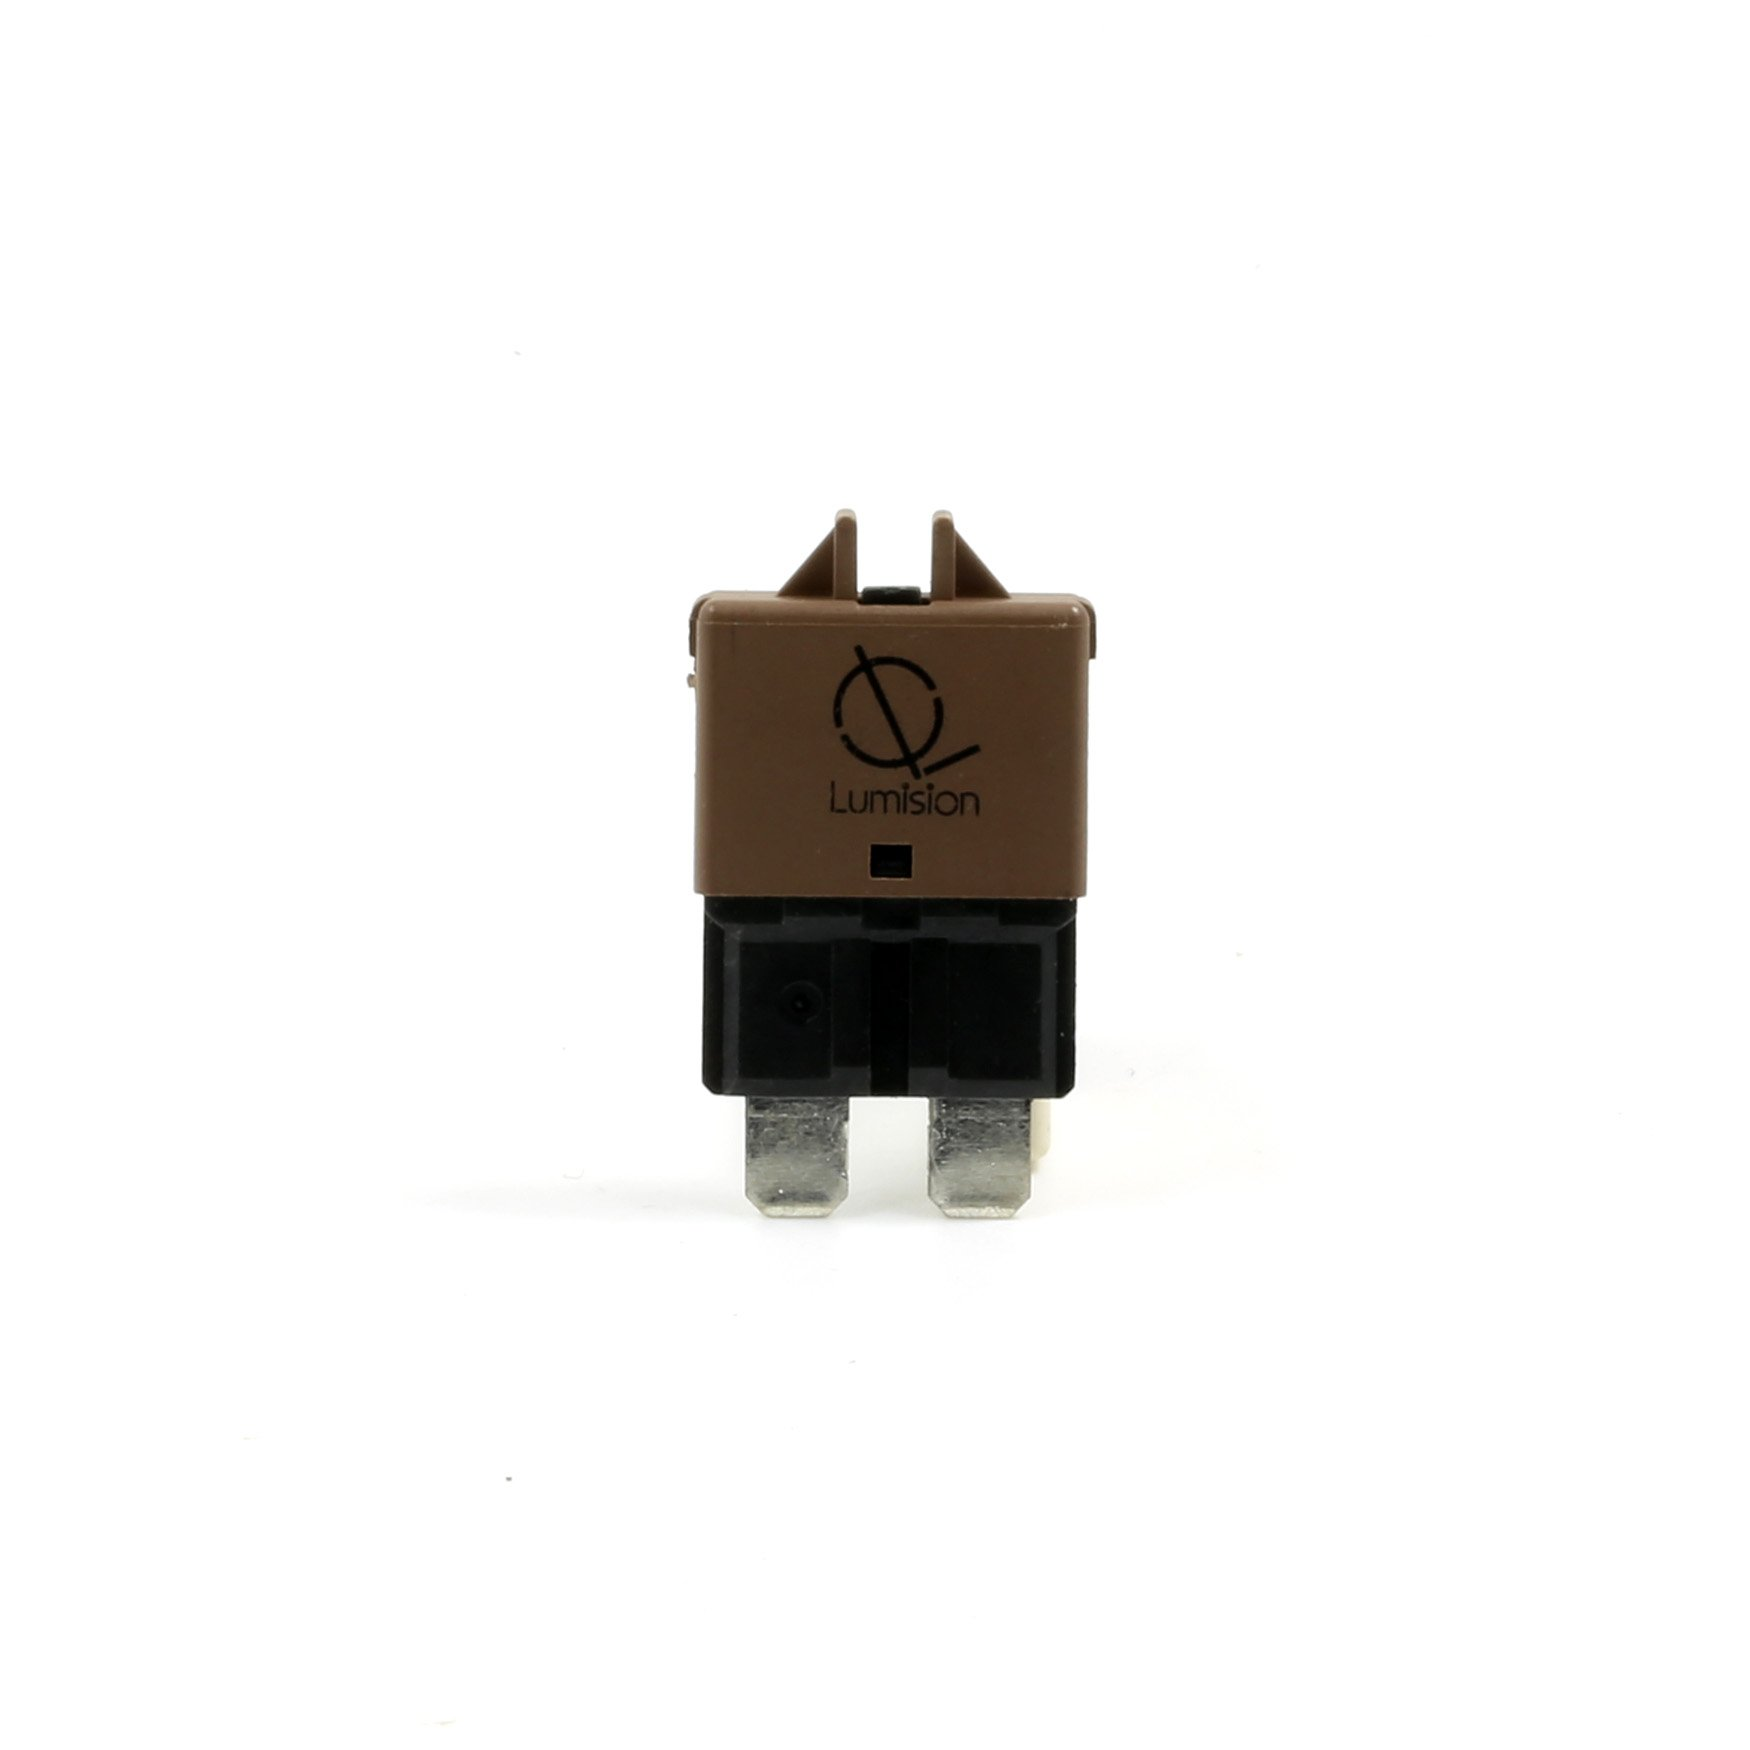 Resettable 7.5AMP Automotive Fuse ATO ATC ATS APR Breaker Type III Thermal Circuit Blade-Style Circuit Breakers